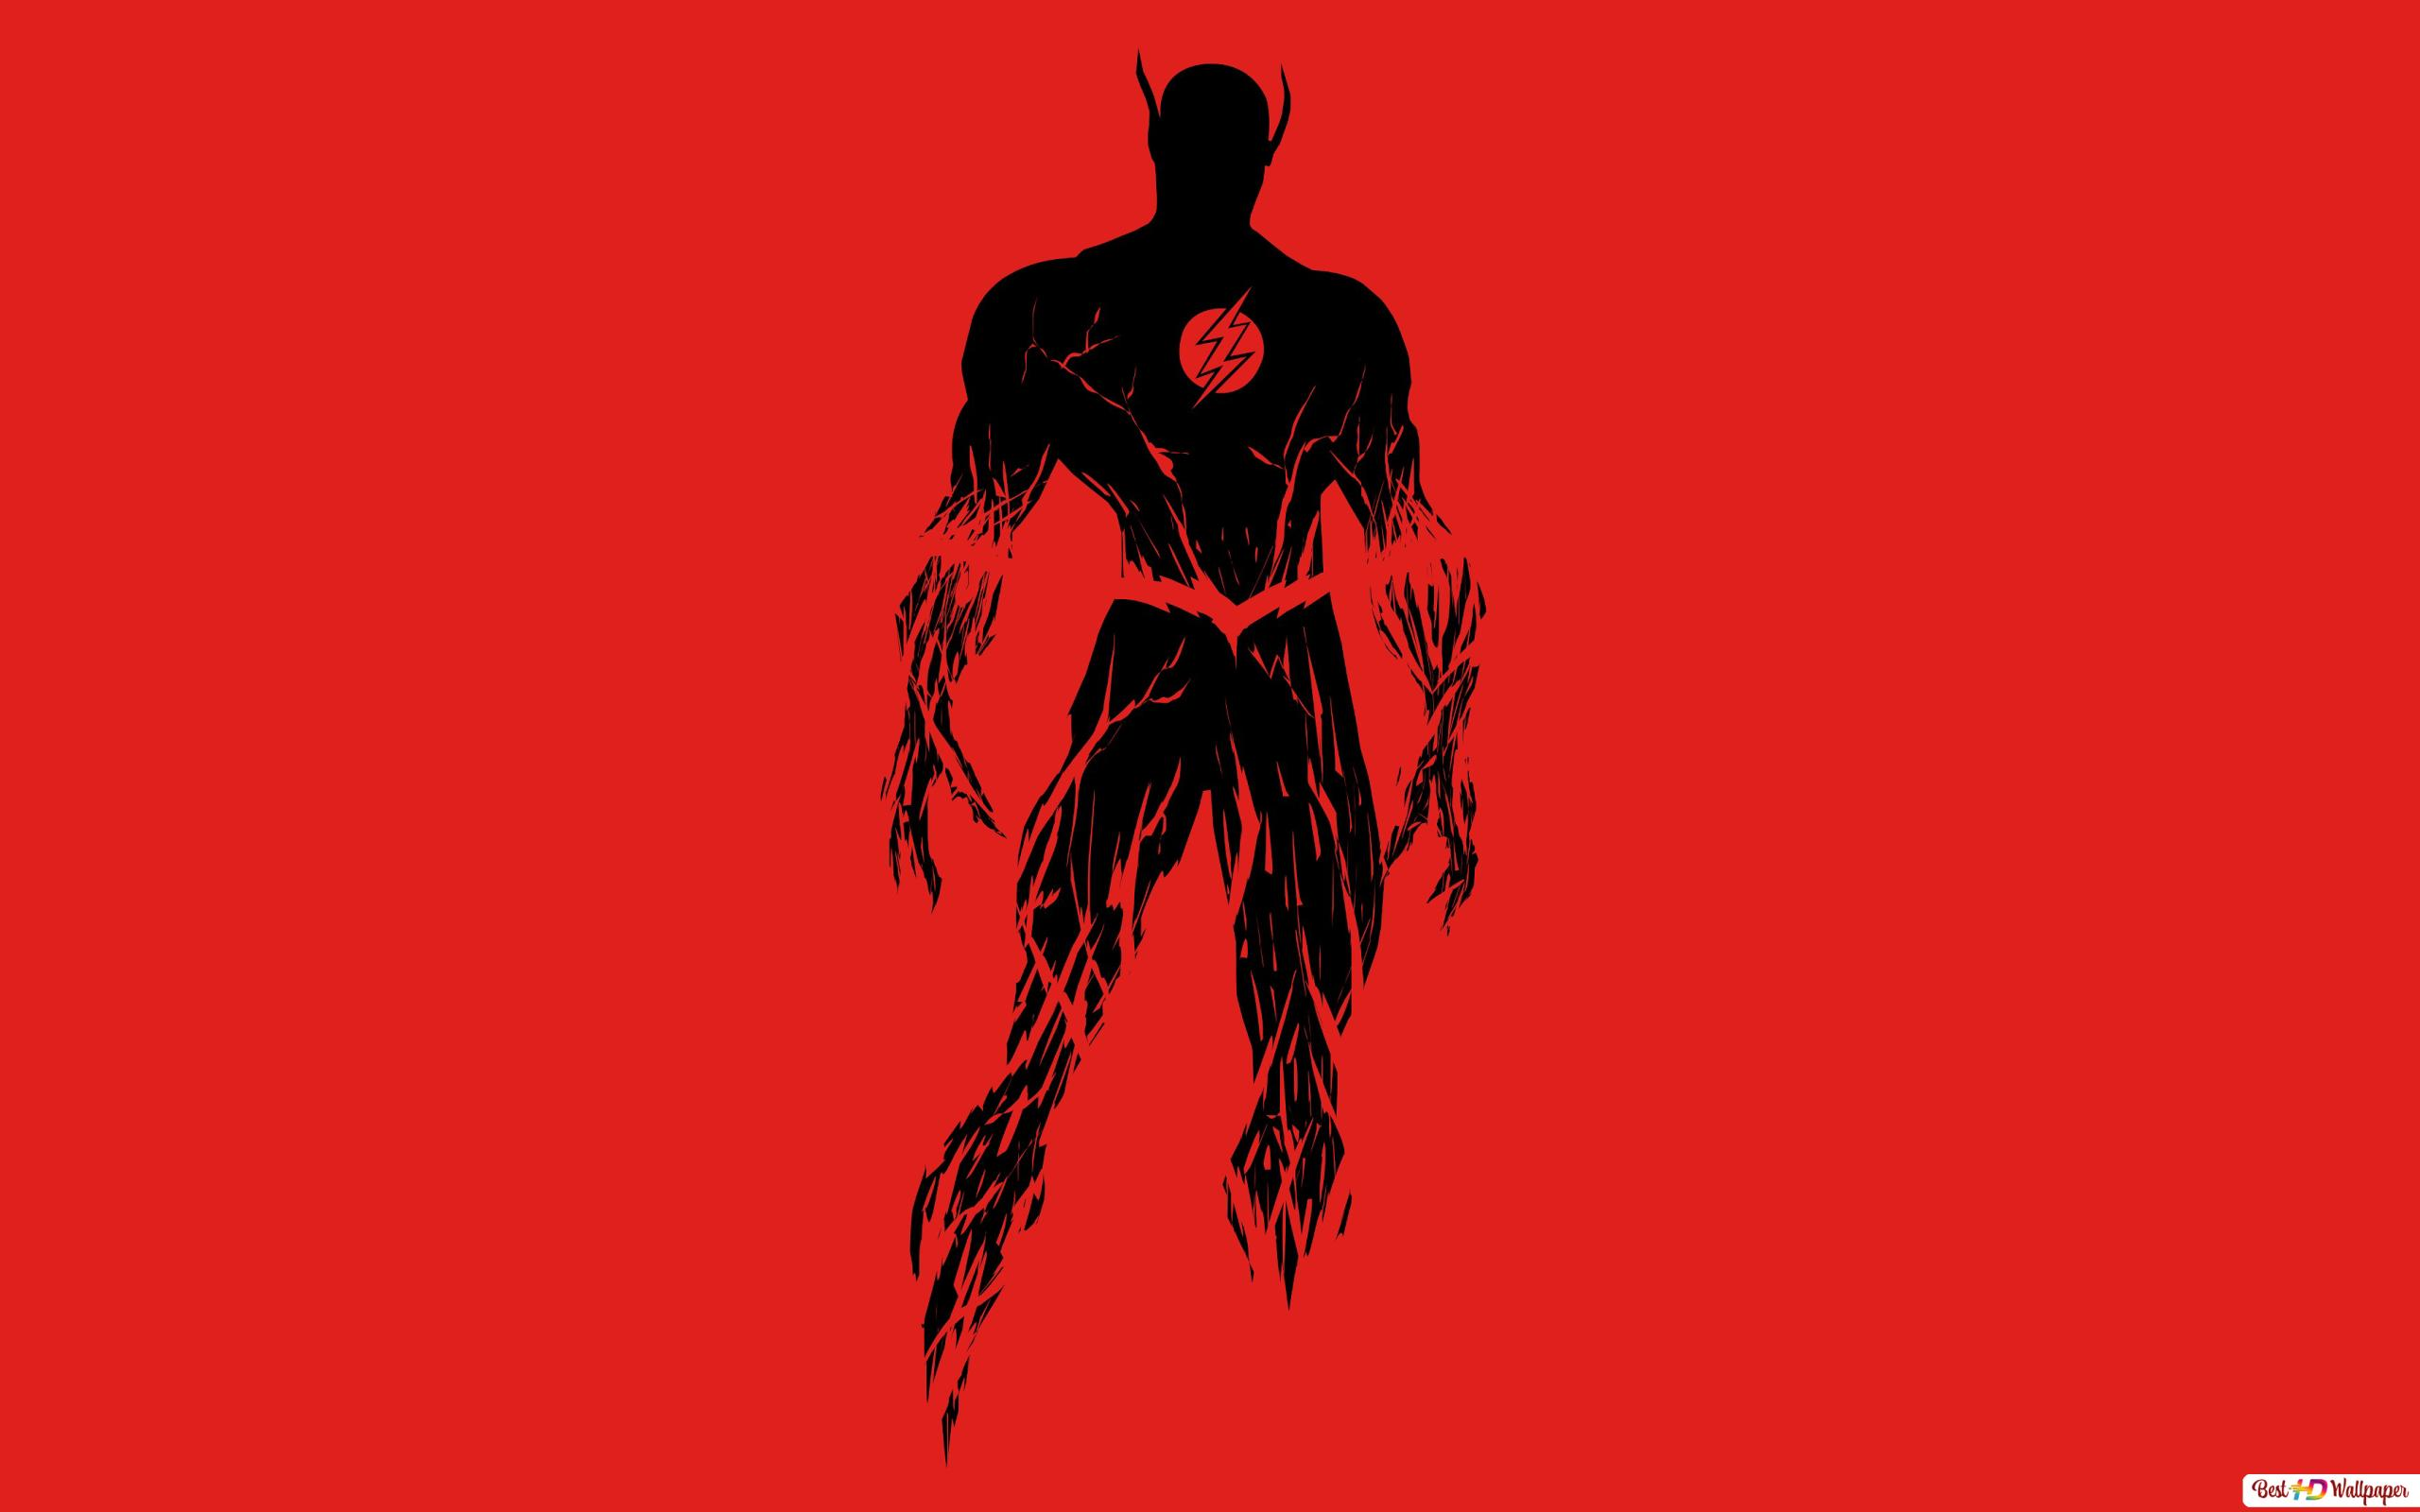 The Flash Black And Red Minimalist Hd Wallpaper Download